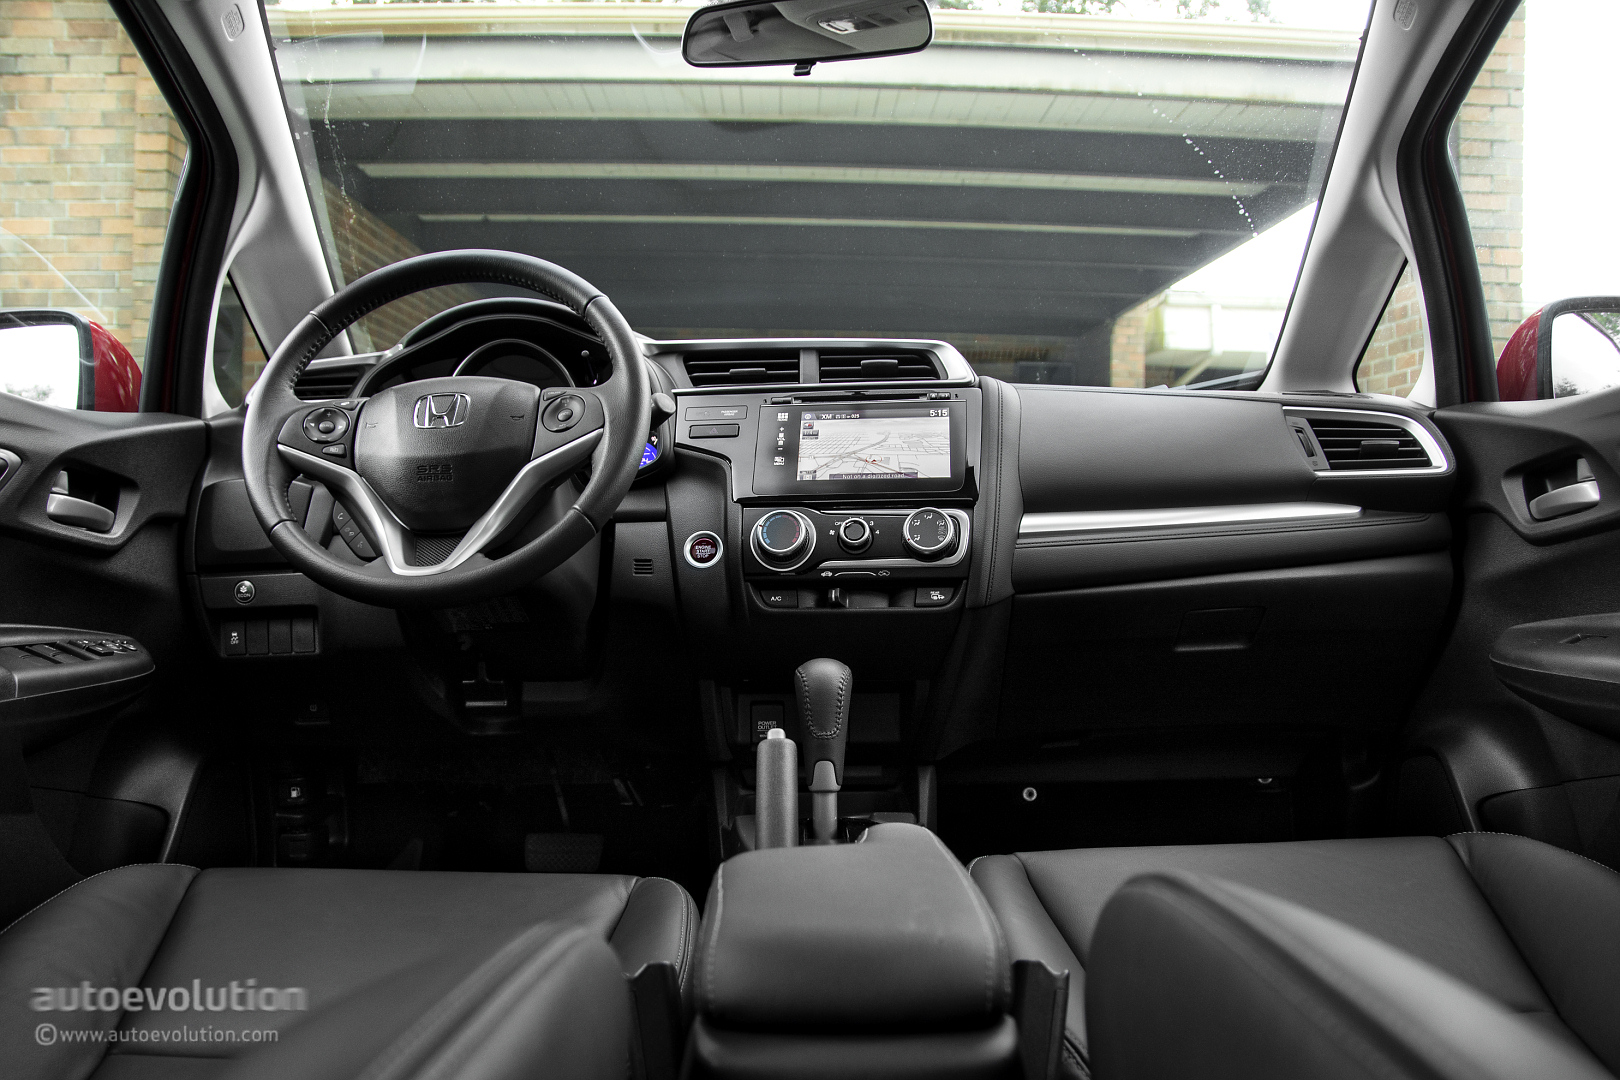 hight resolution of the ride is really nice and you get confident brakes and accurate steering on the new honda fit the 1 5 liter engine is mated to a cvt gearbox and delivers